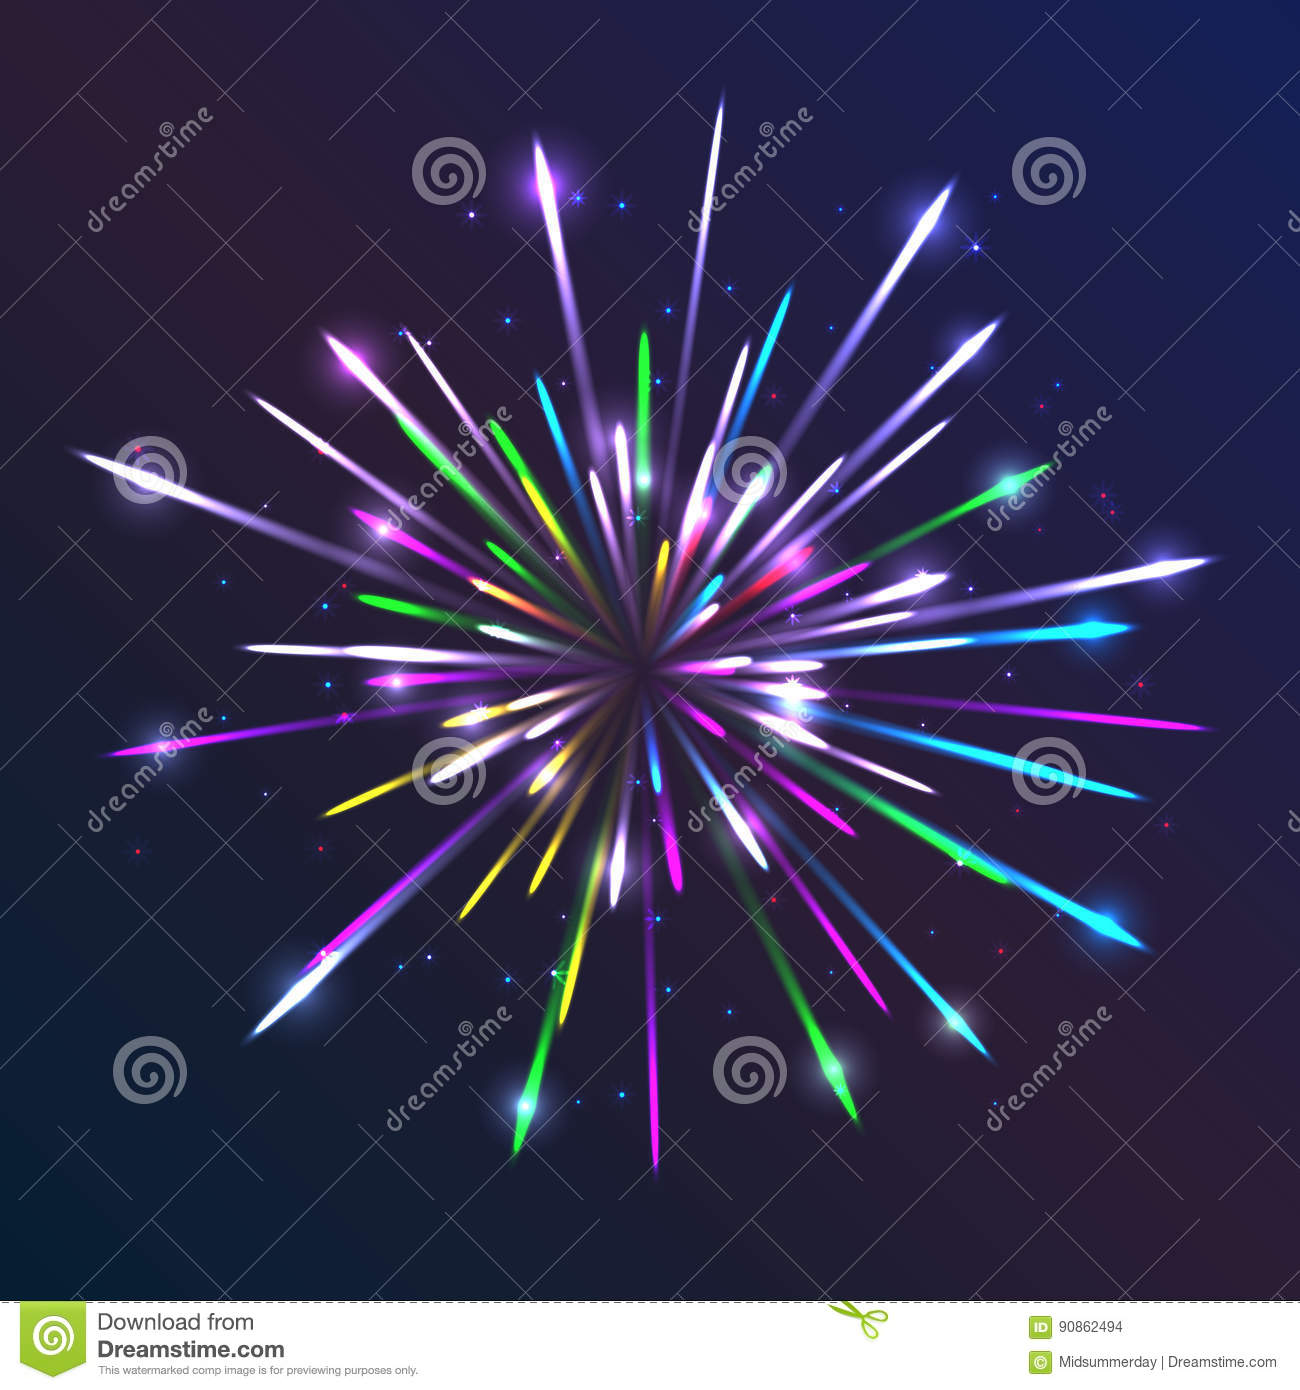 vector fireworks abstract background with bright lines and